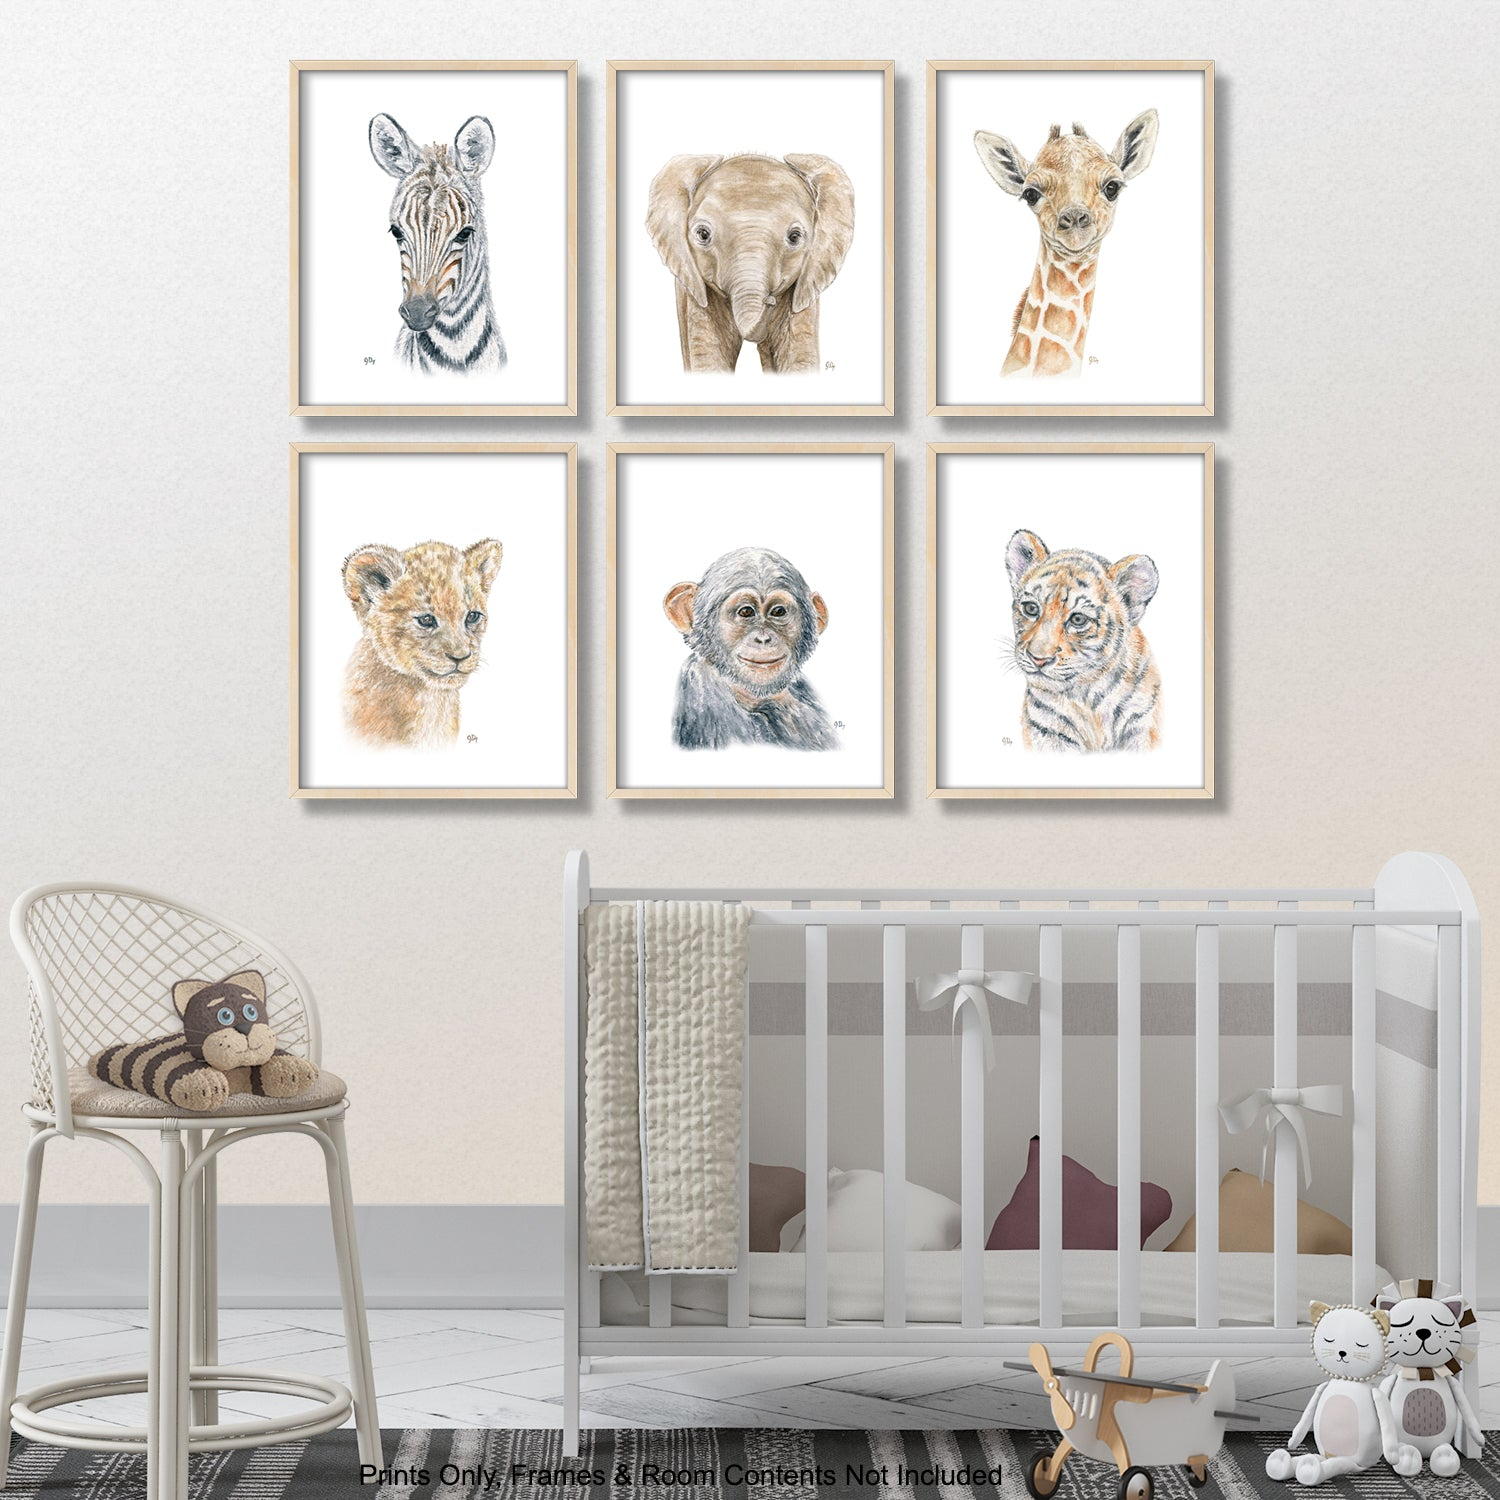 safari jungle african animal adventure nursery playroom art wall decor giraffe elephant zebra lion cub monkey tiger